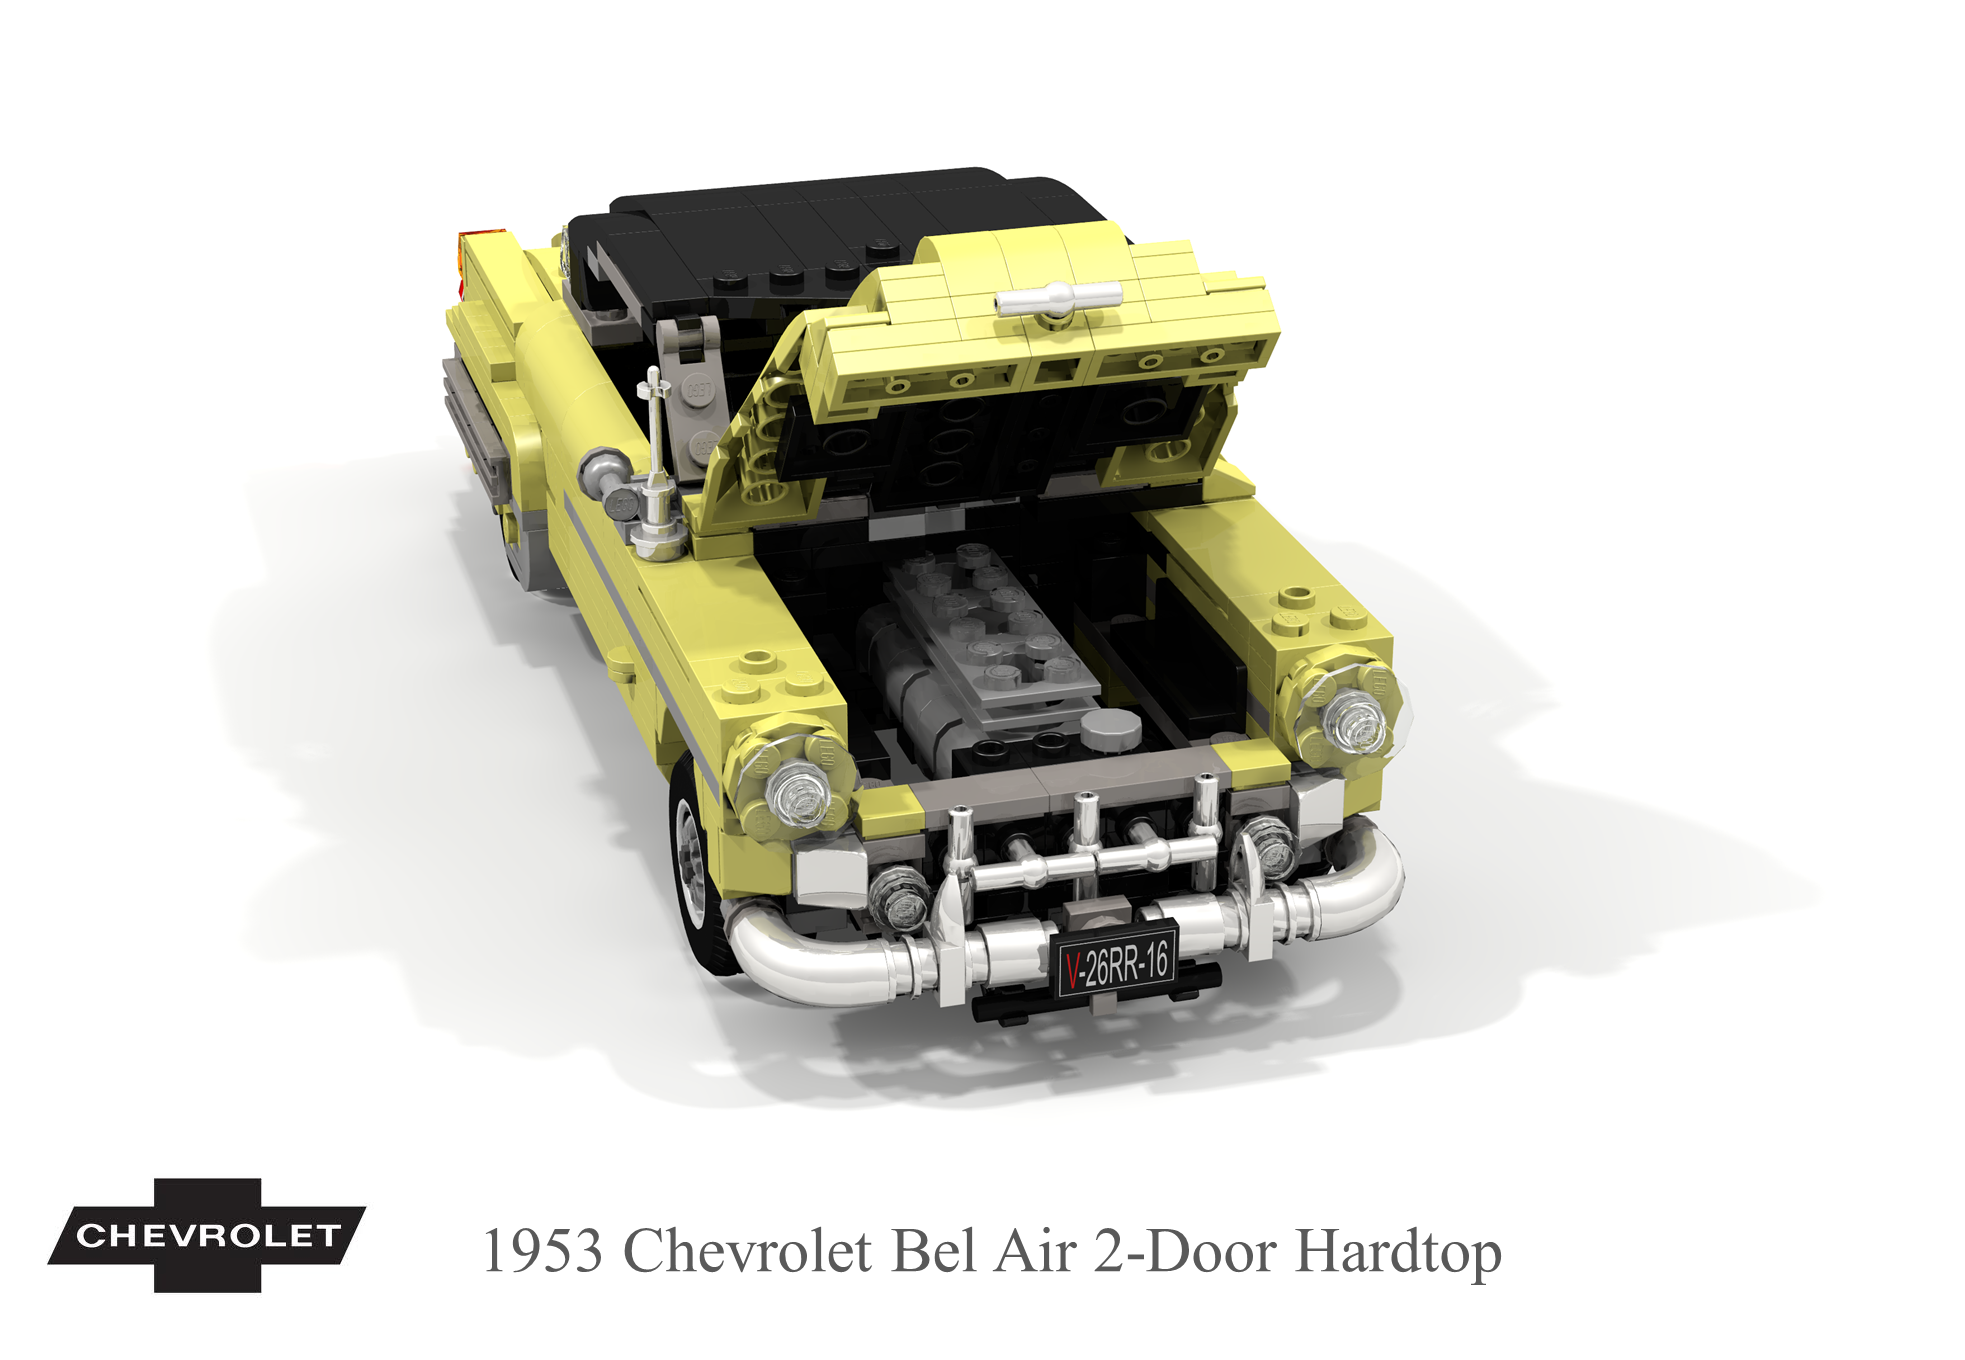 chevrolet_1953_bel_air_hardtop_coupe_03.png